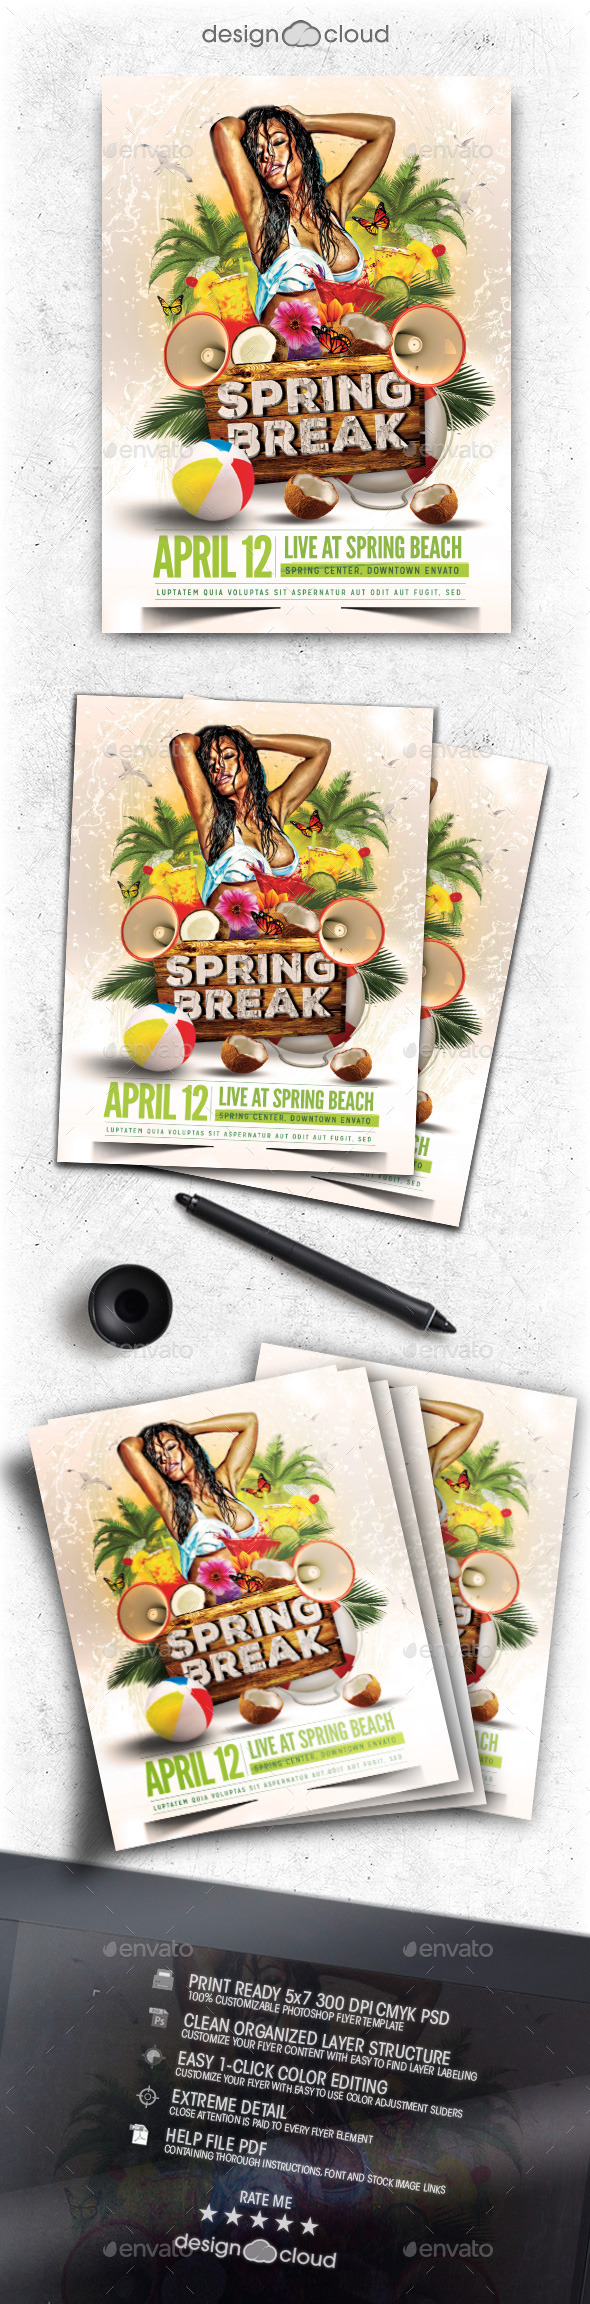 Spring Break Flyer Template Vol. 1 - Clubs & Parties Events